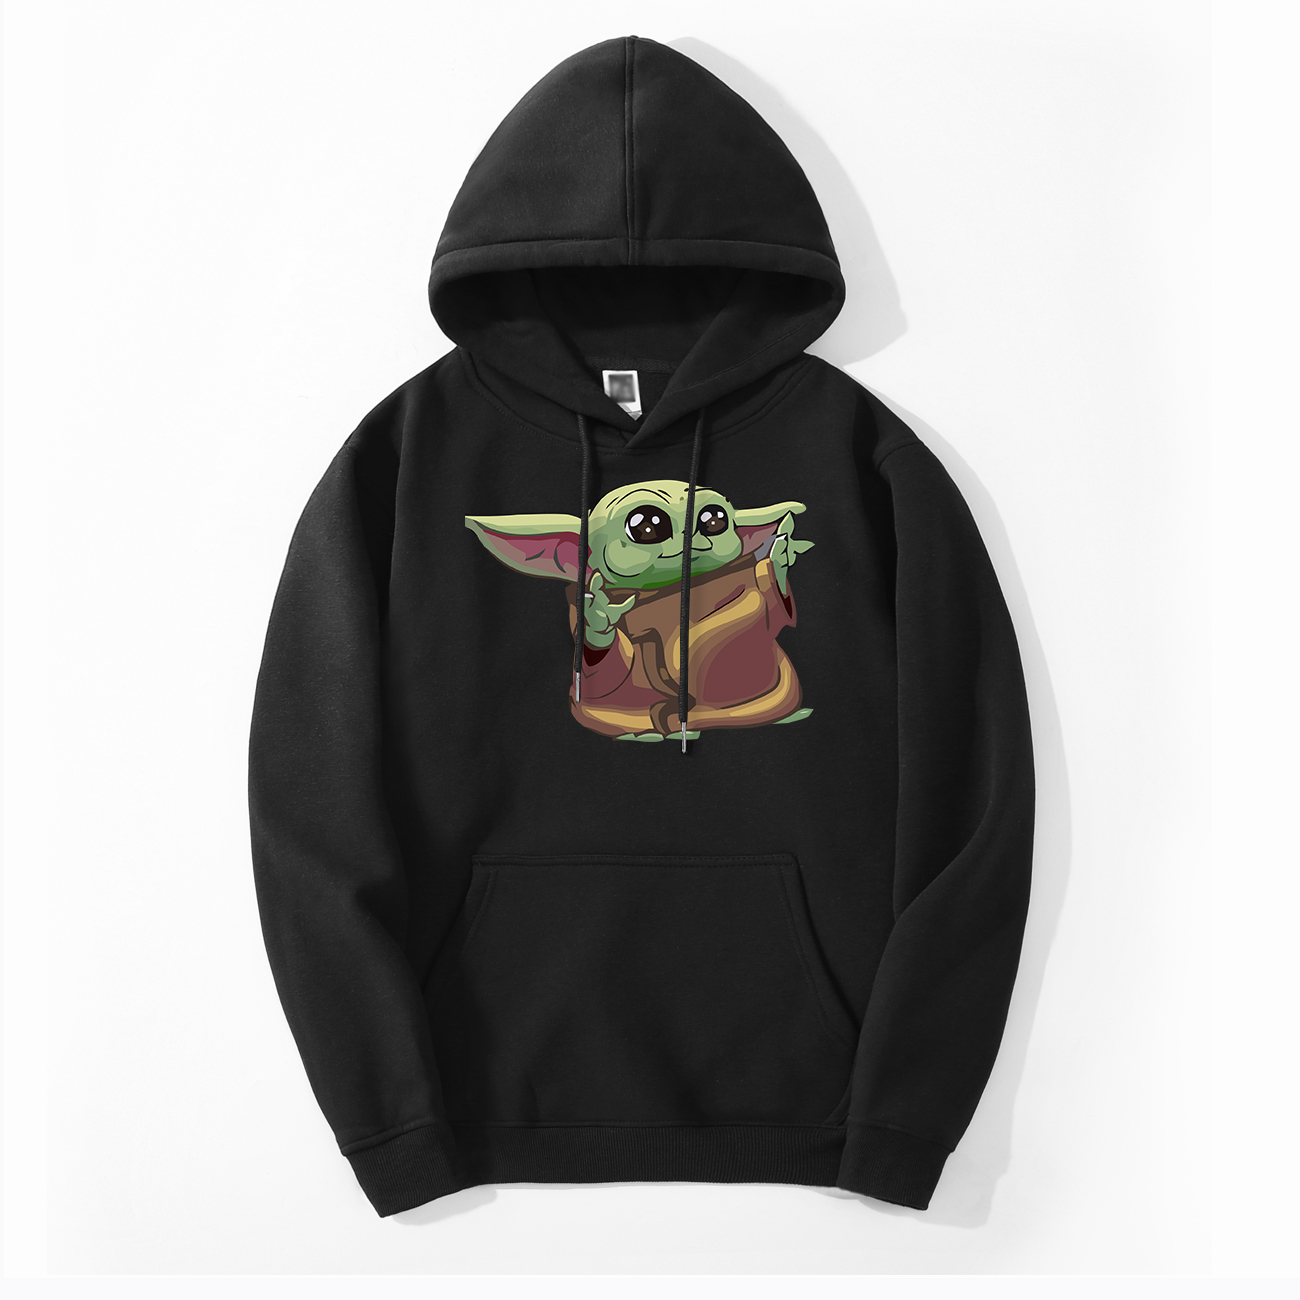 Bebe Yoda Men's Child Yoda Hoodies Spring Autumn Hoodies Sweatshirts Men Fleece Tops The Mandalorian Star War Hoodies Sweatshirt